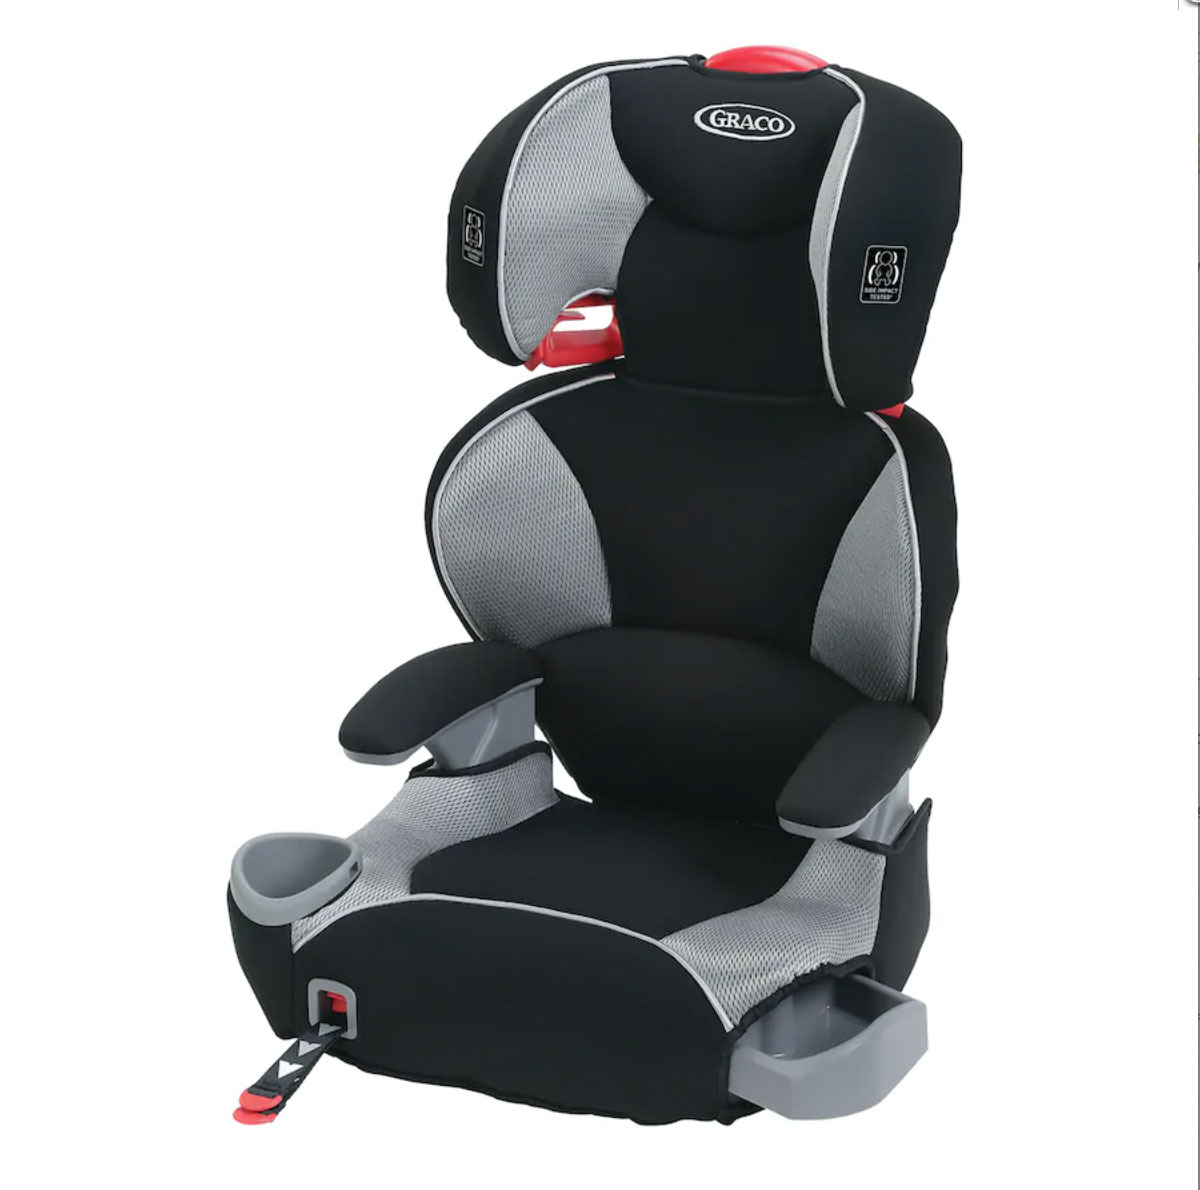 Graco TurboBooster LX High Back Booster Seat